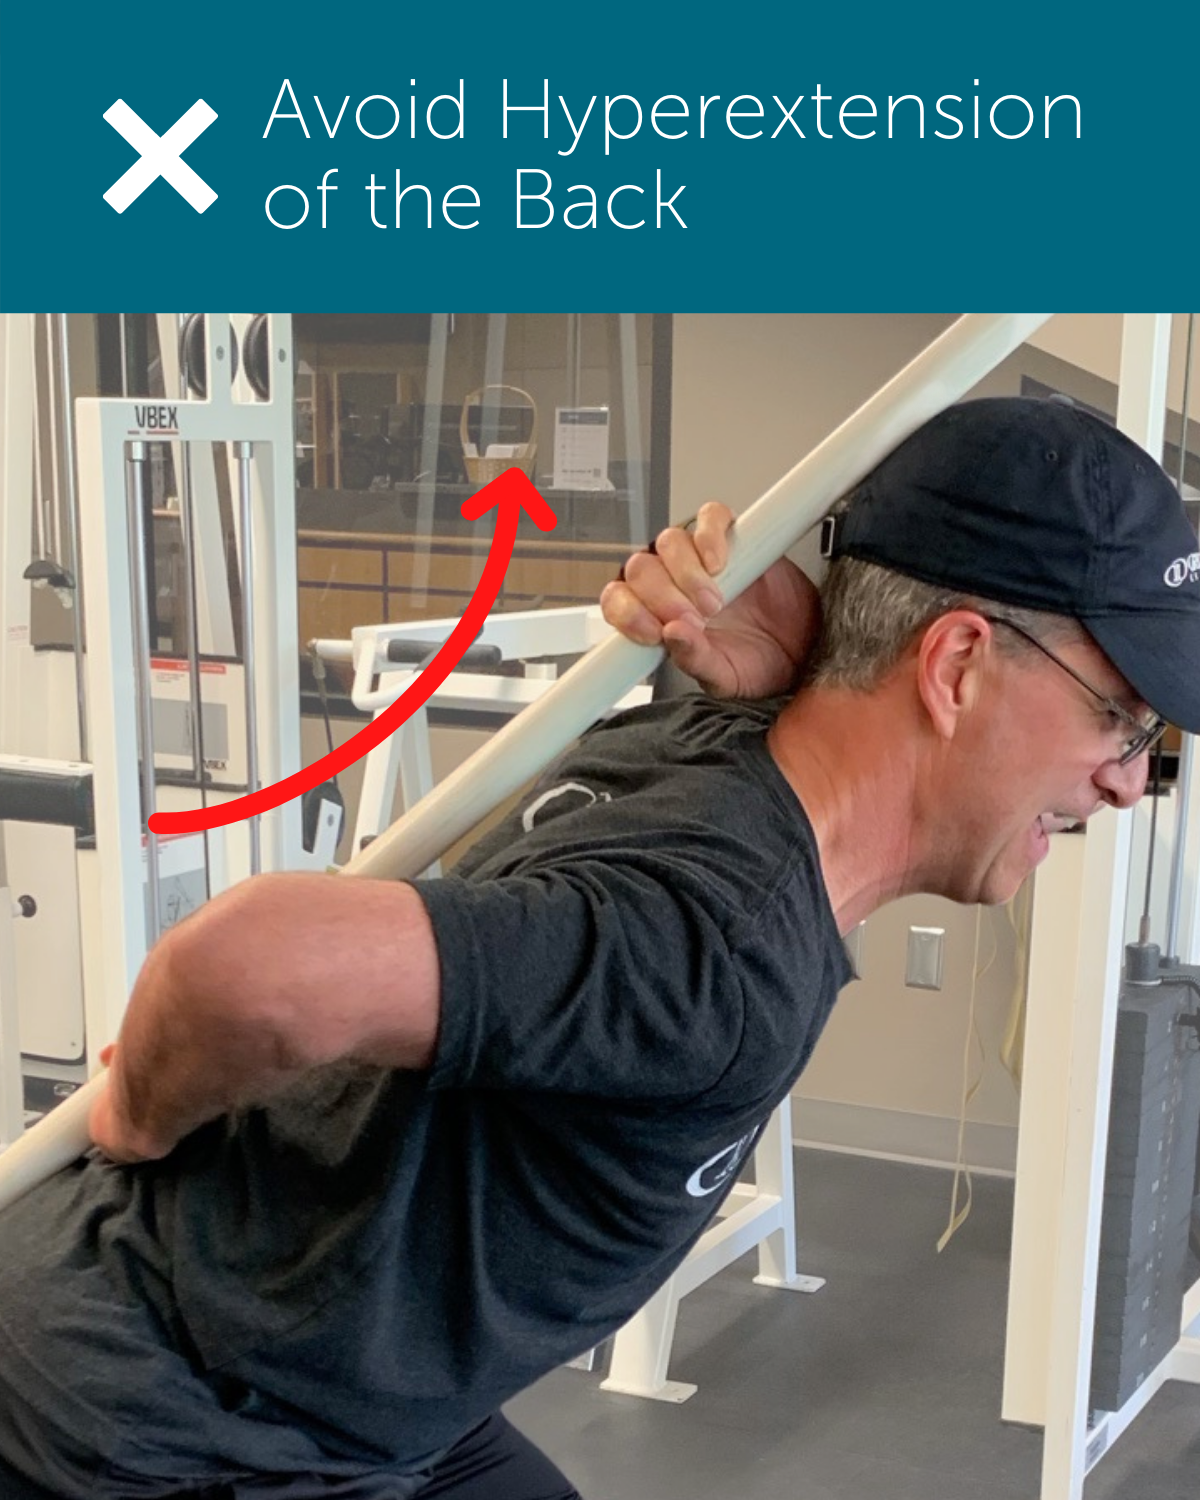 Orthopedic institute physical therapist demonstrates hyperextension of the back as an example of poor posture when squatting or hip hinging.